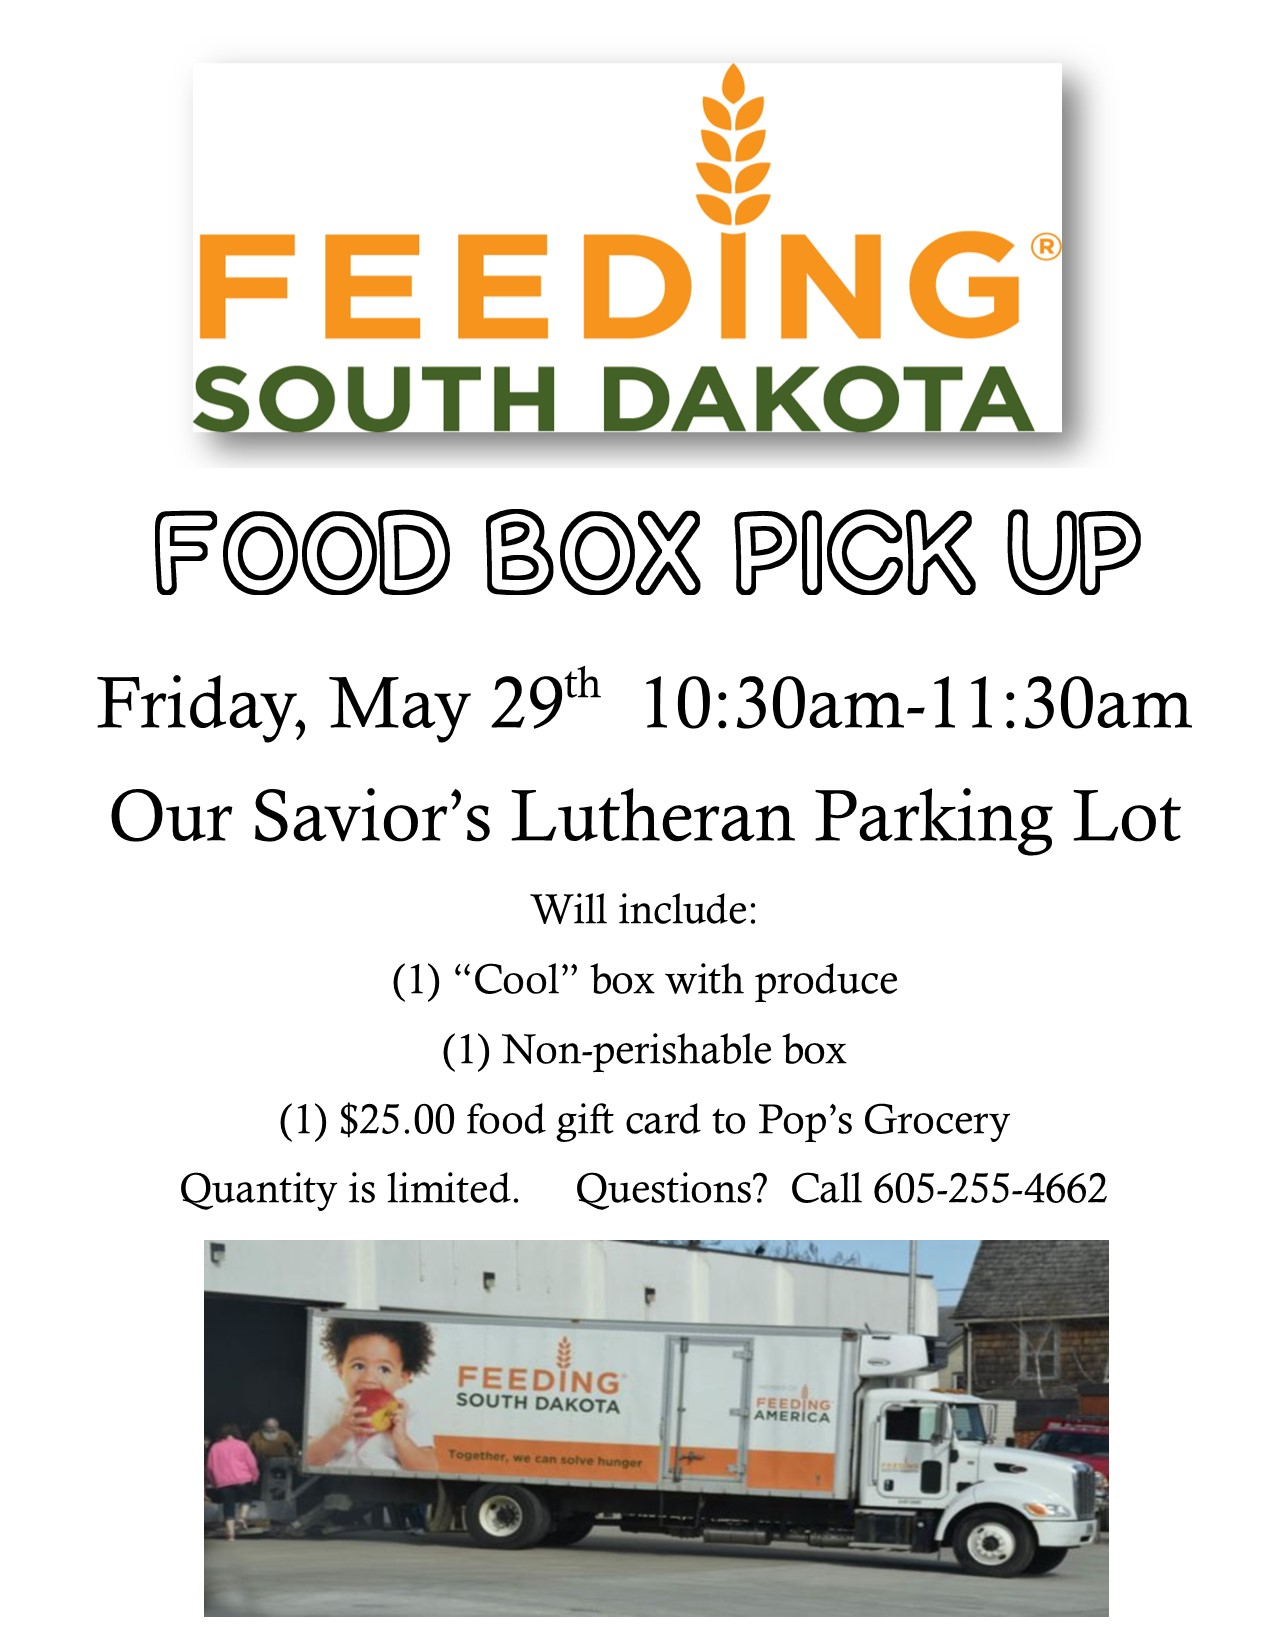 Feeding South Dakota Food Box Pick-Up